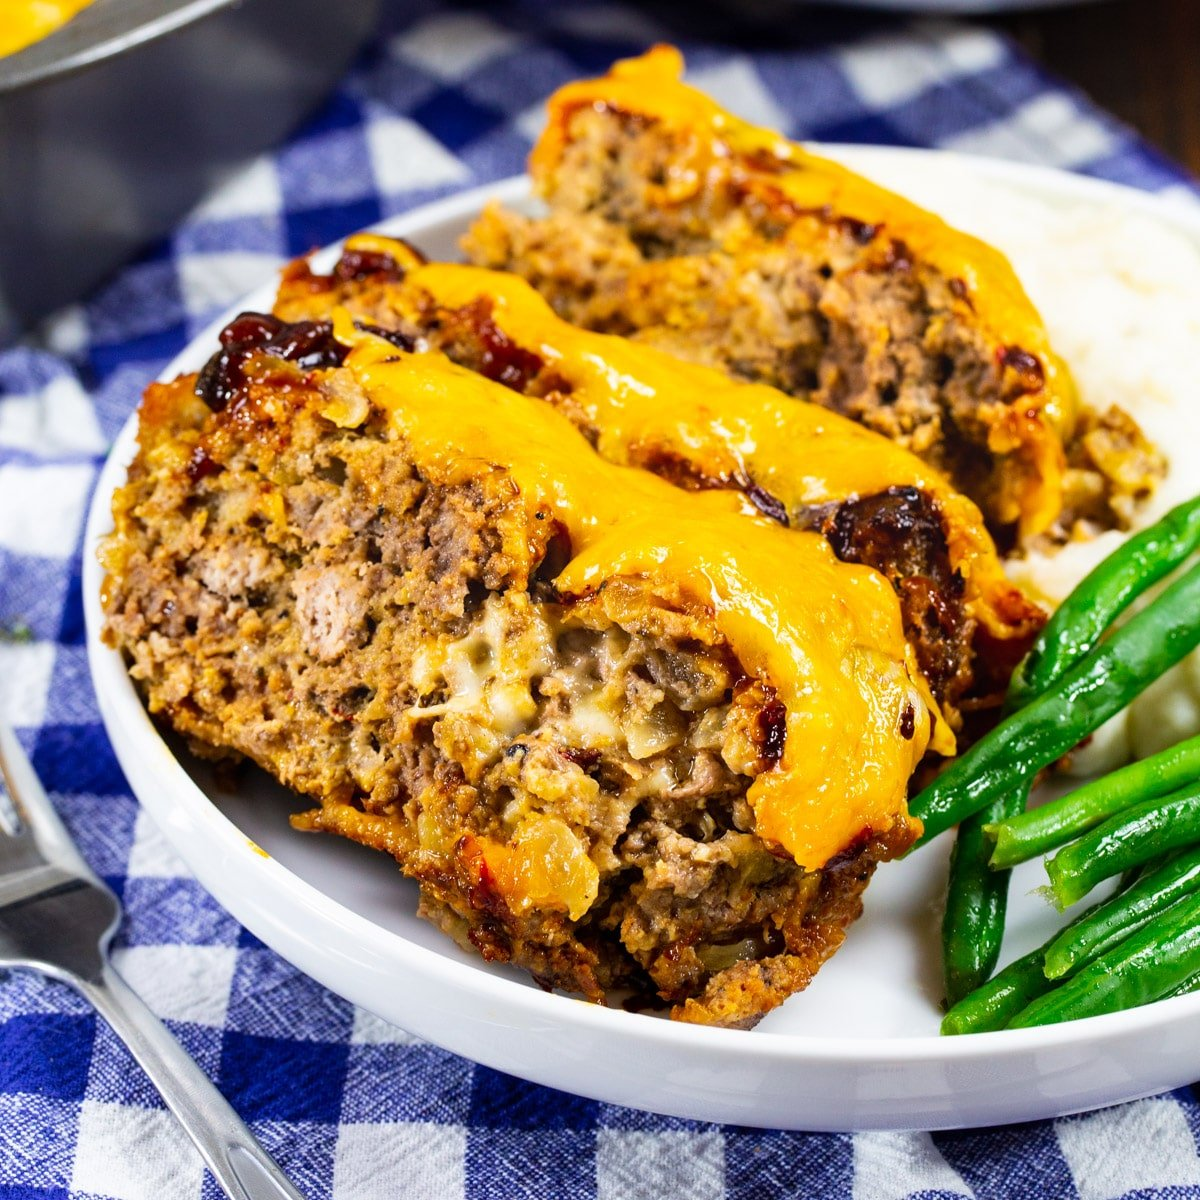 Three slices of Cheesy Chipotle Meatloaf on a plate.